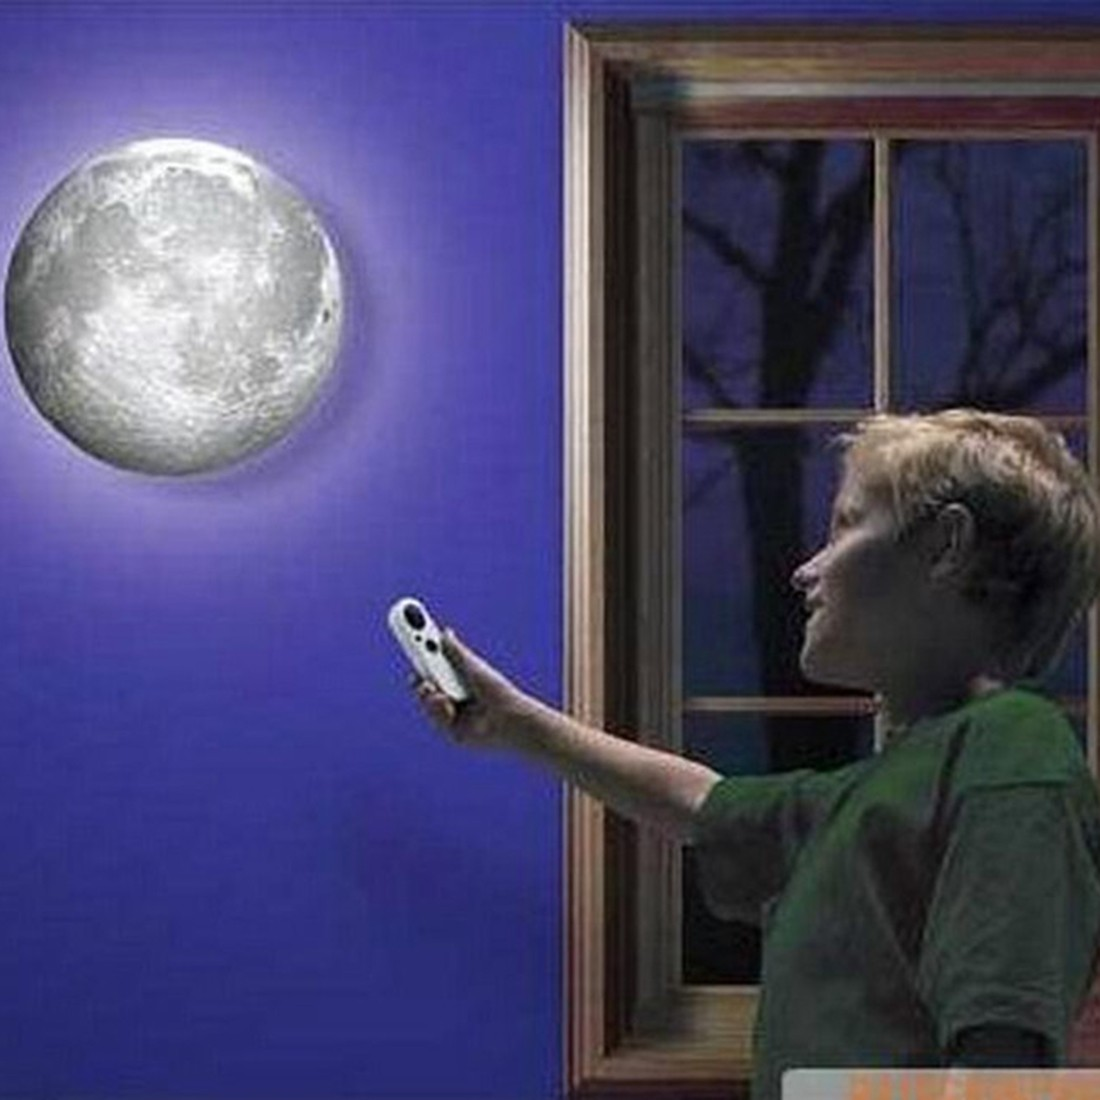 Amazing Remote Control LED Healing Moon Wall Ceiling Night Lamp Kids Gifts Romantic Wall Hanging Lamp цена 2017